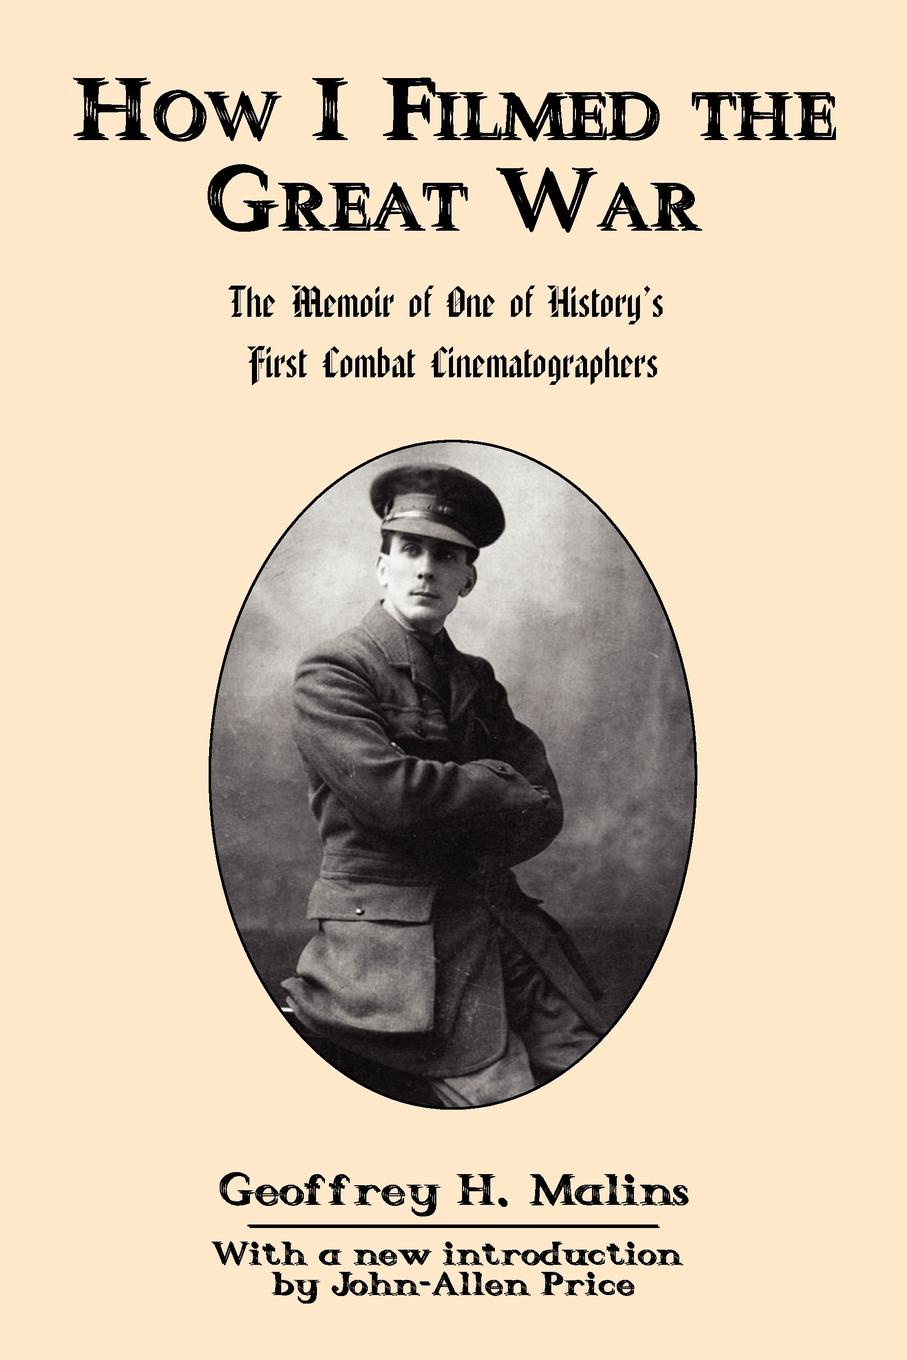 Geoffrey H. Malins. How I Filmed the Great War. The Memoir of One of History's First Combat Cinematographers